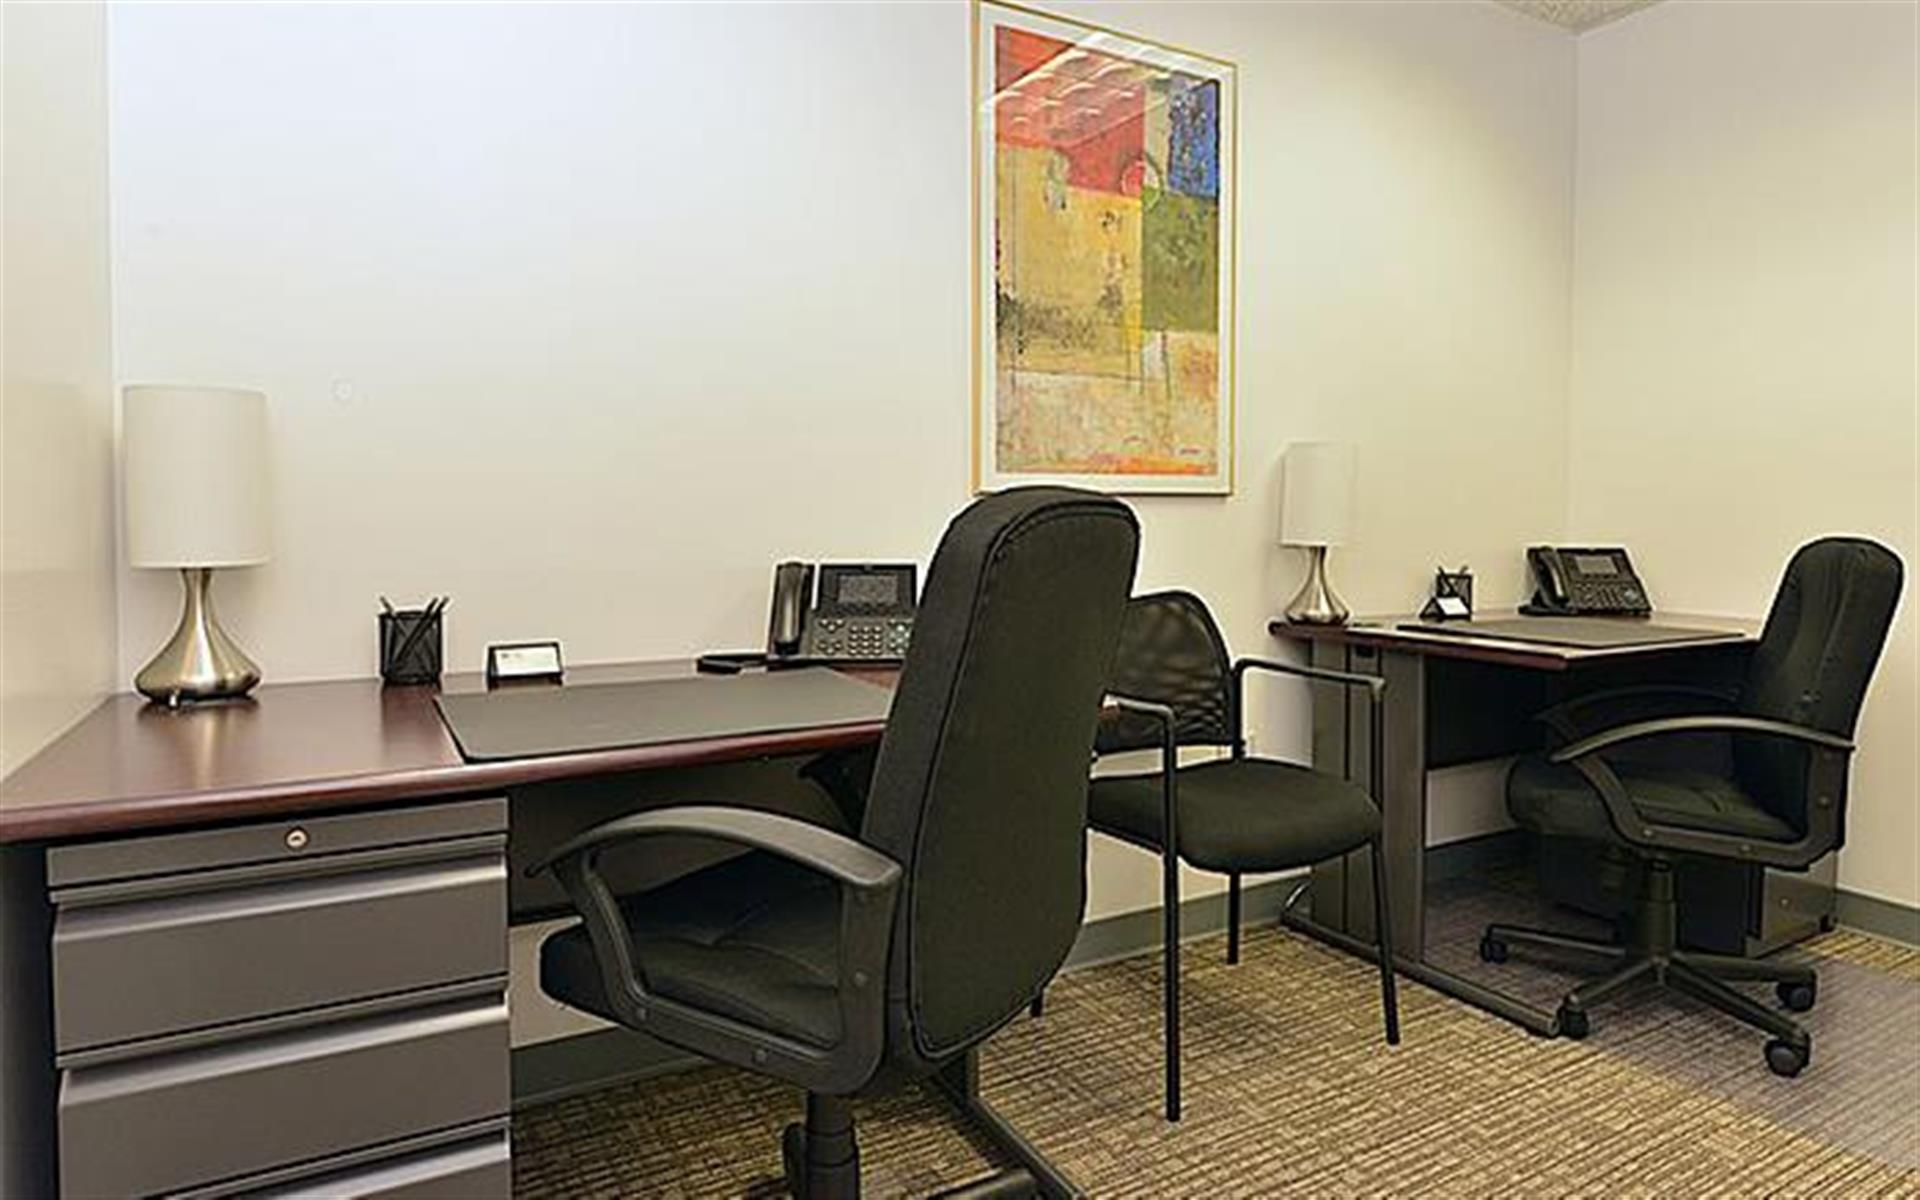 NYC Office Suites 733 (3rd Ave. & 45th) - Private Office 733 (2 Desks)